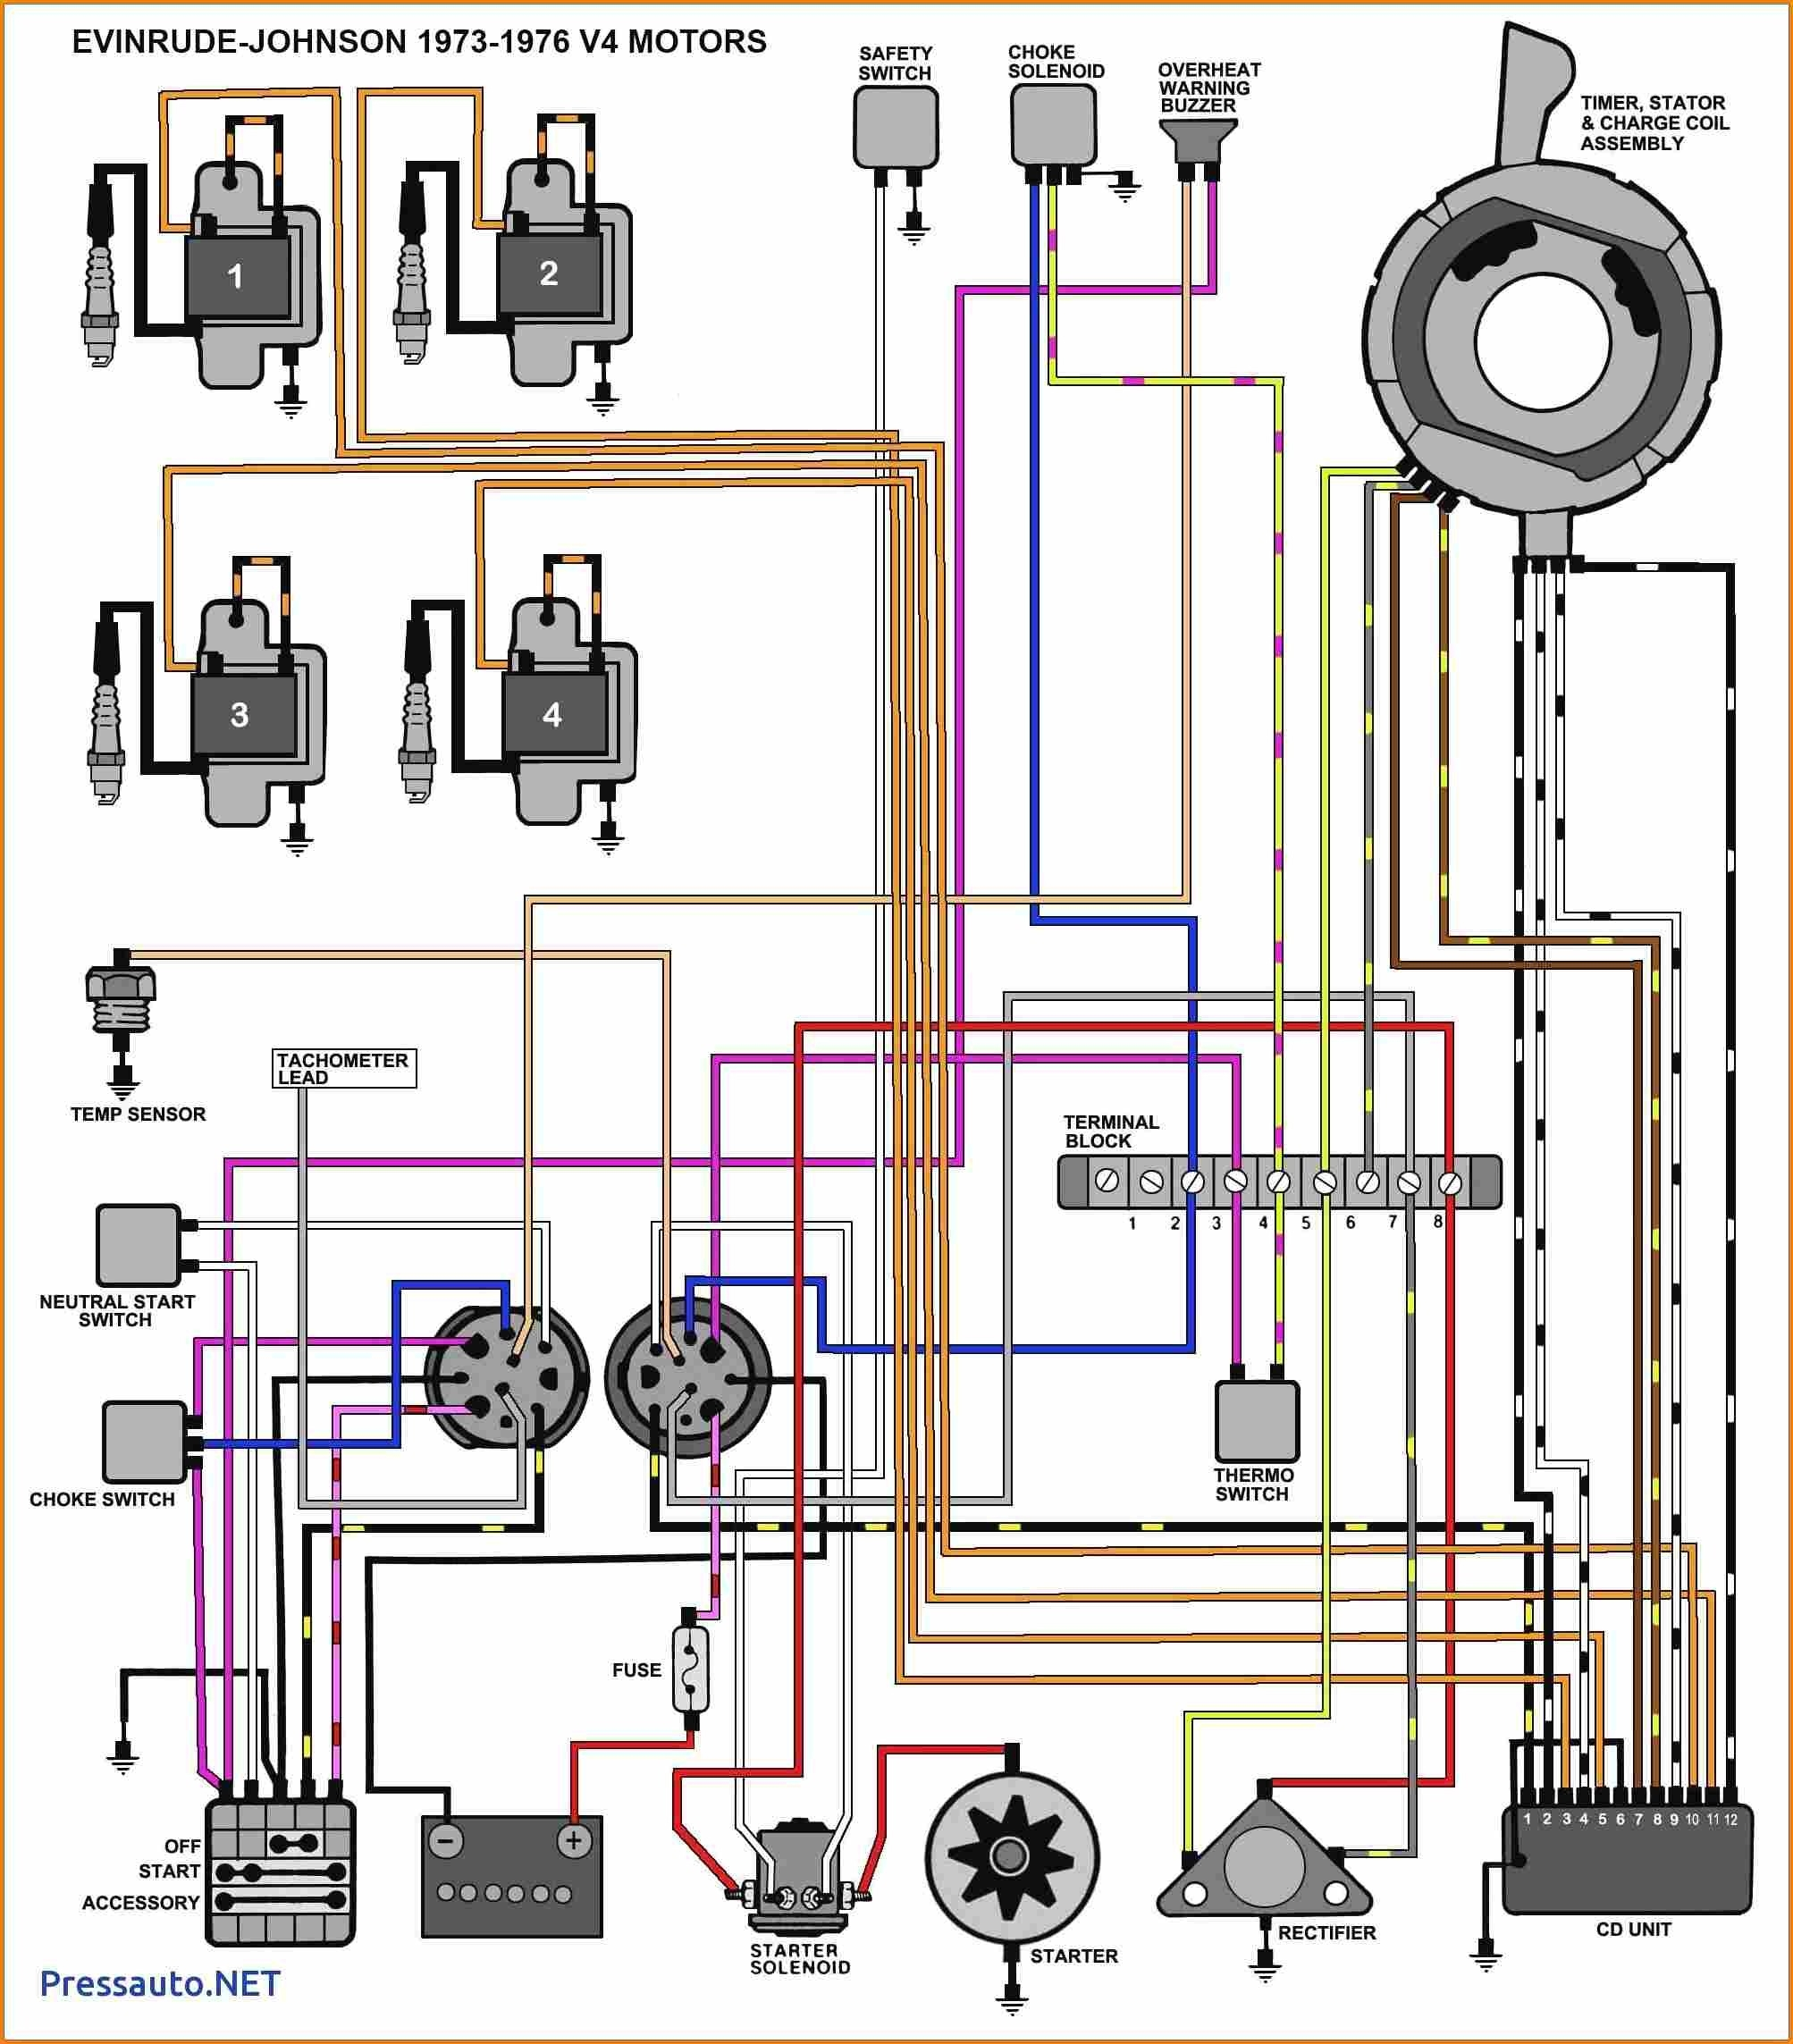 79 25 Hp Johnson Outboards Wiring Diagrams evinrude ignition ... Johnson Outboard Wiring Diagram Pdf on johnson outboard ignition switch wiring, johnson outboard manual pdf, johnson outboard 150 wiring diagram, johnson seahorse 25 hp motor, johnson outboard motor wiring diagram, johnson wiring color codes, johnson 115 outboard schematic,